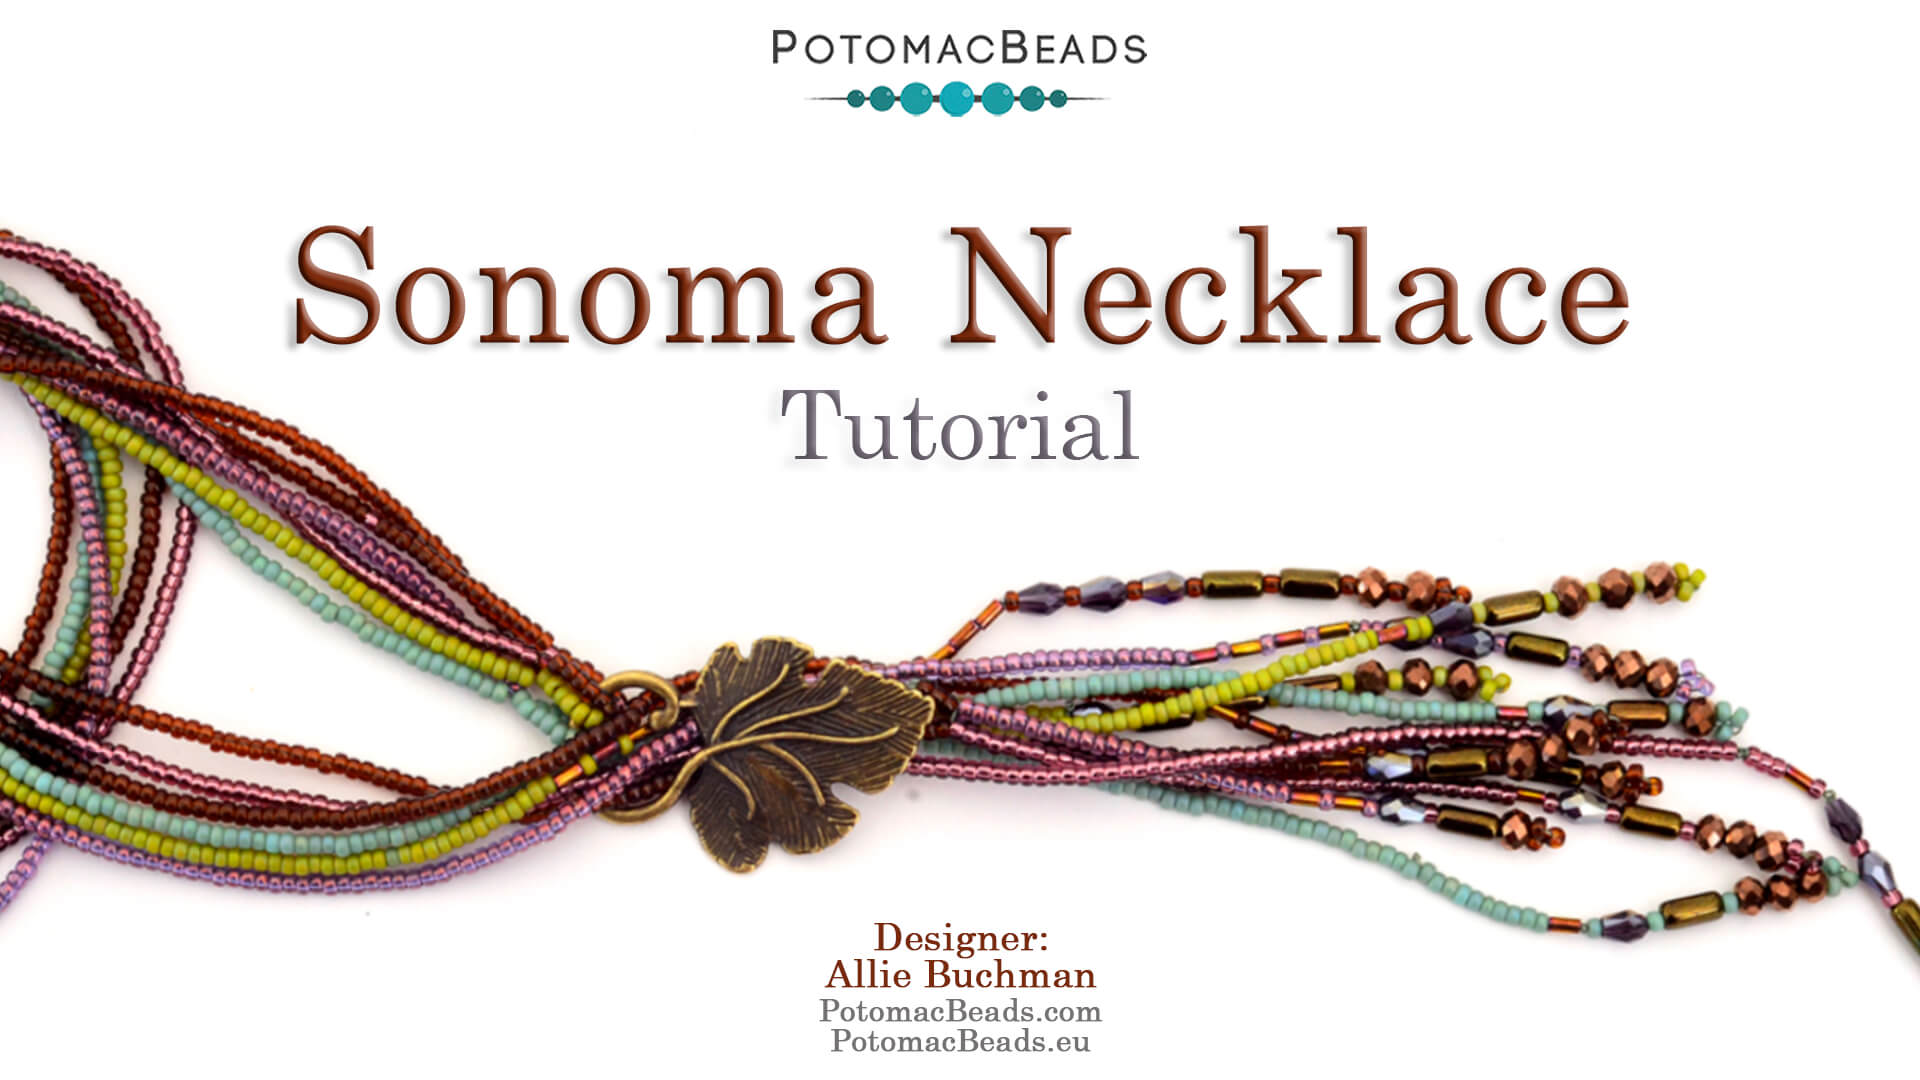 How to Bead / Videos Sorted by Beads / Potomac Crystal Videos / Sonoma Necklace Tutorial